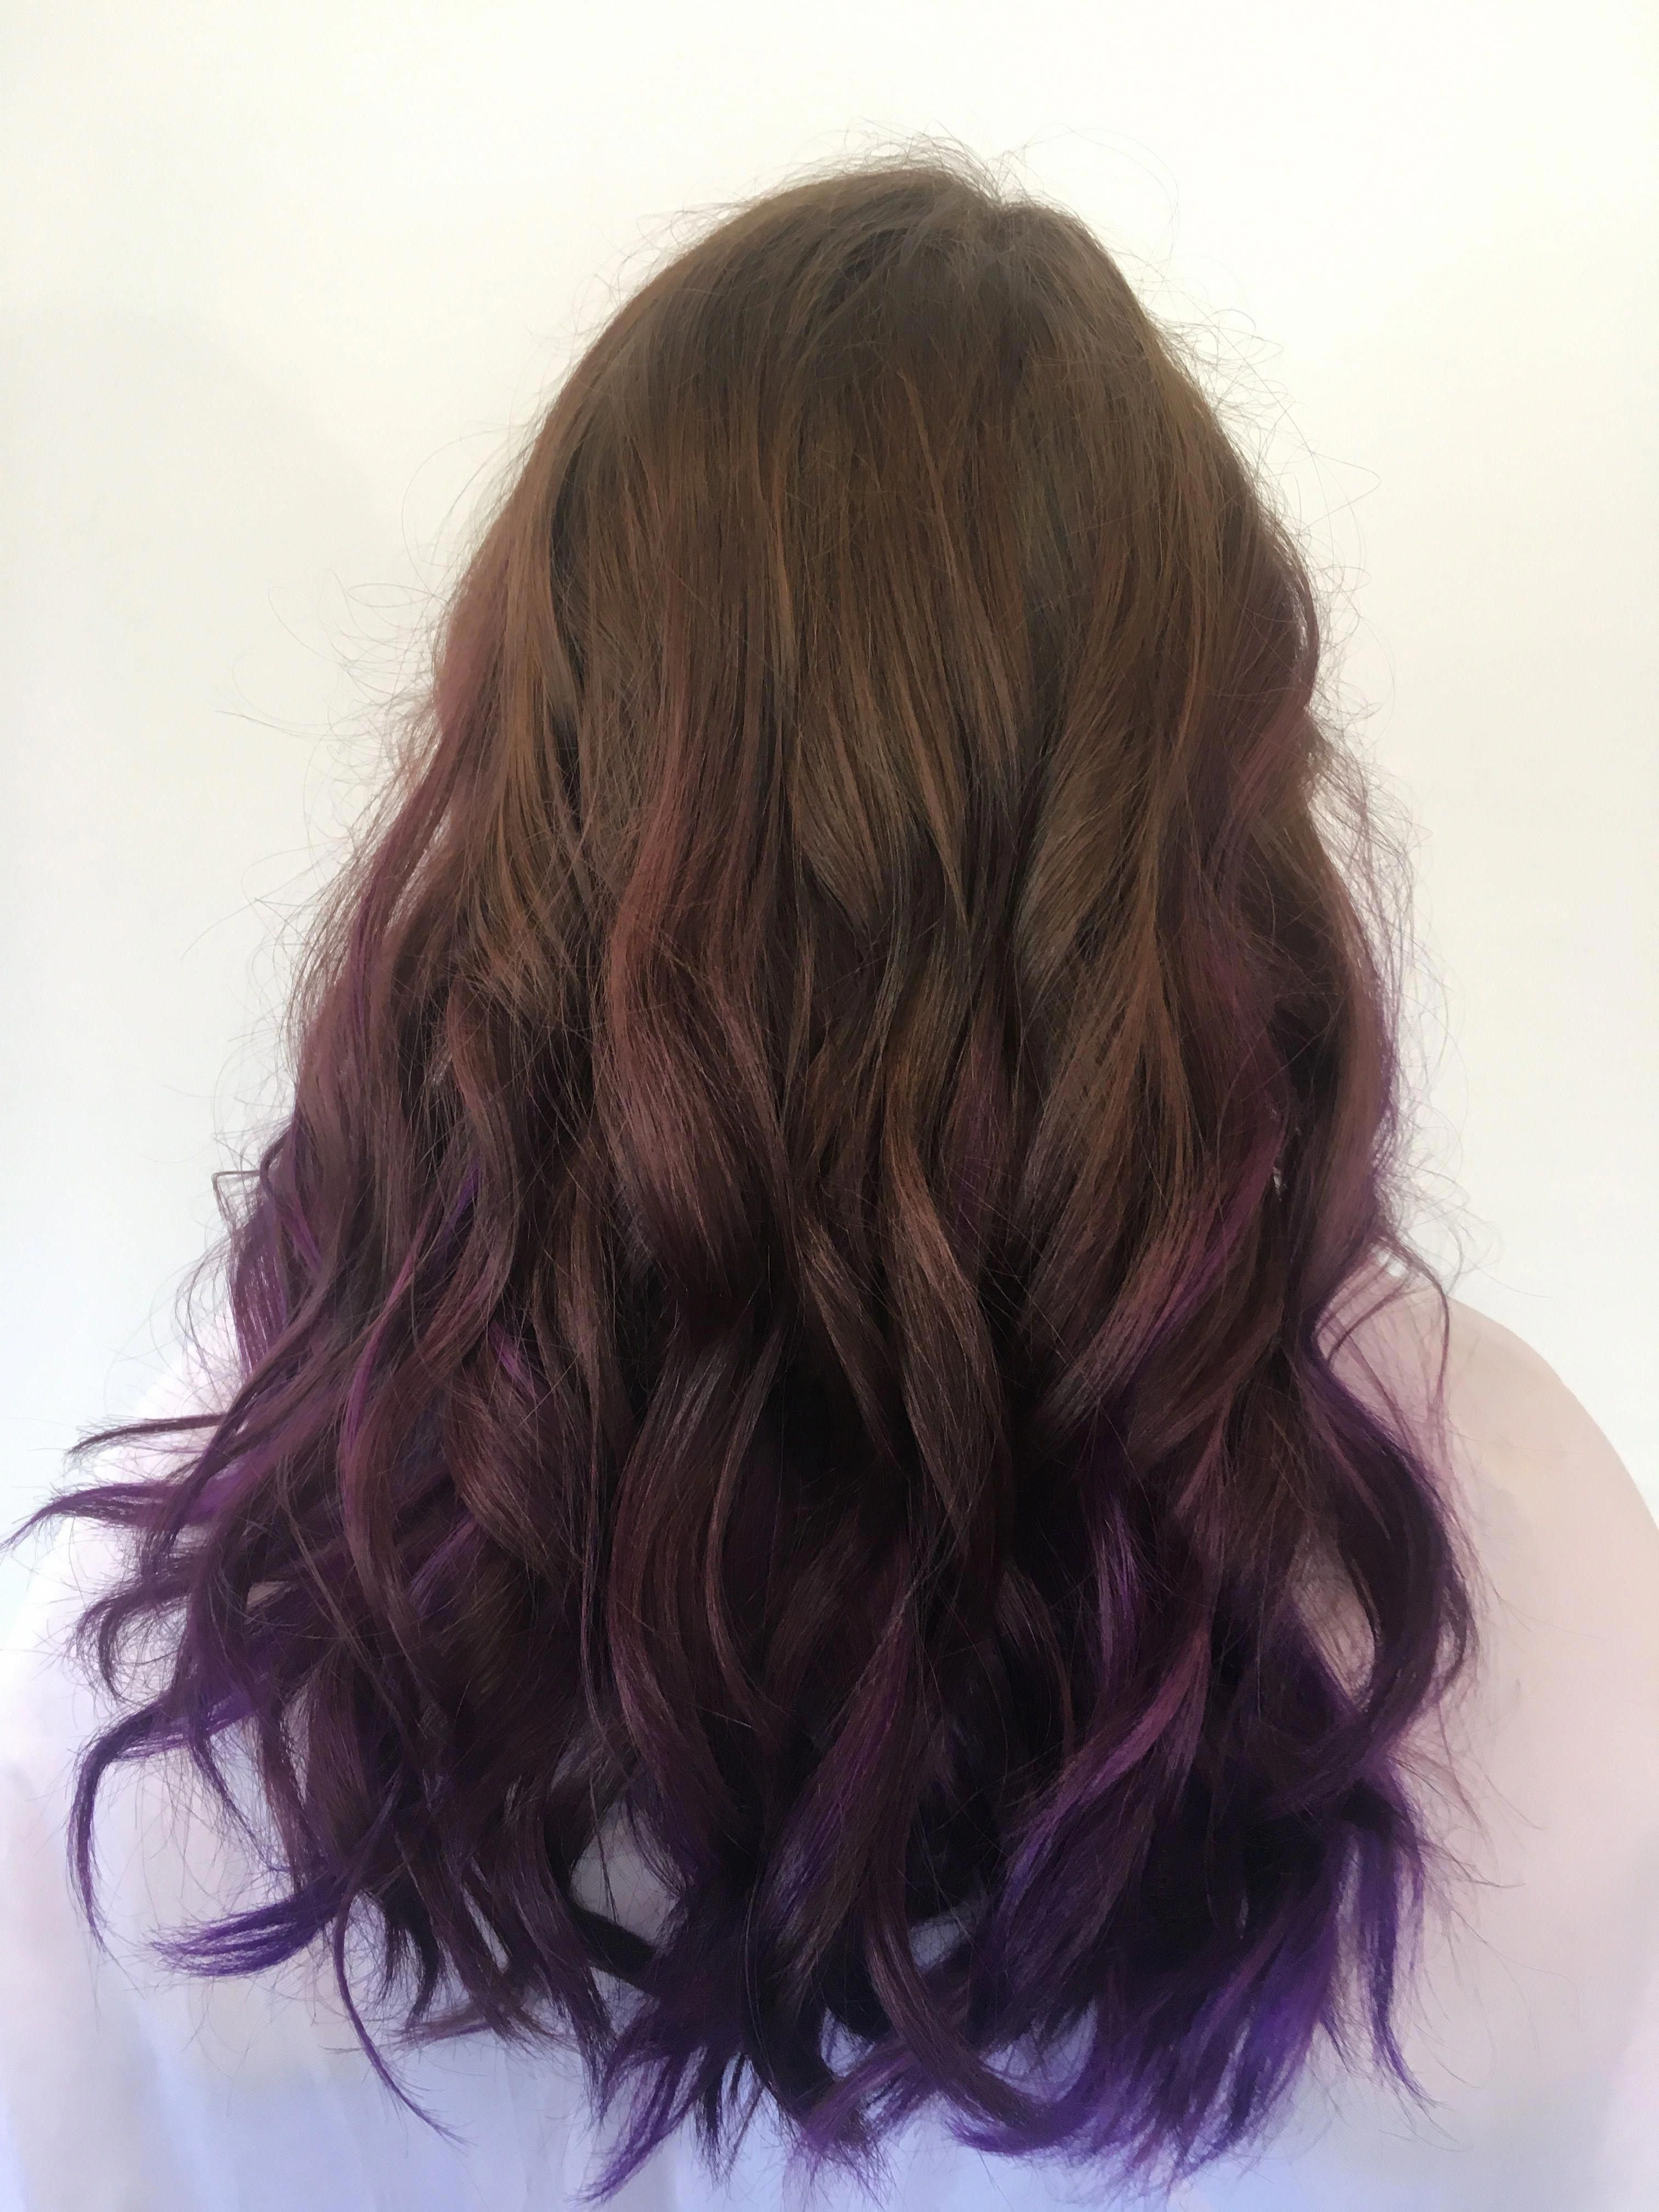 Brown Hair With Purple Ombre Tips Hair In 2019 Brown Hair Purple Hair Hairstyles Brownhairbalayage Brown Hair Dye Purple Hair Tips Hair Dye Tips